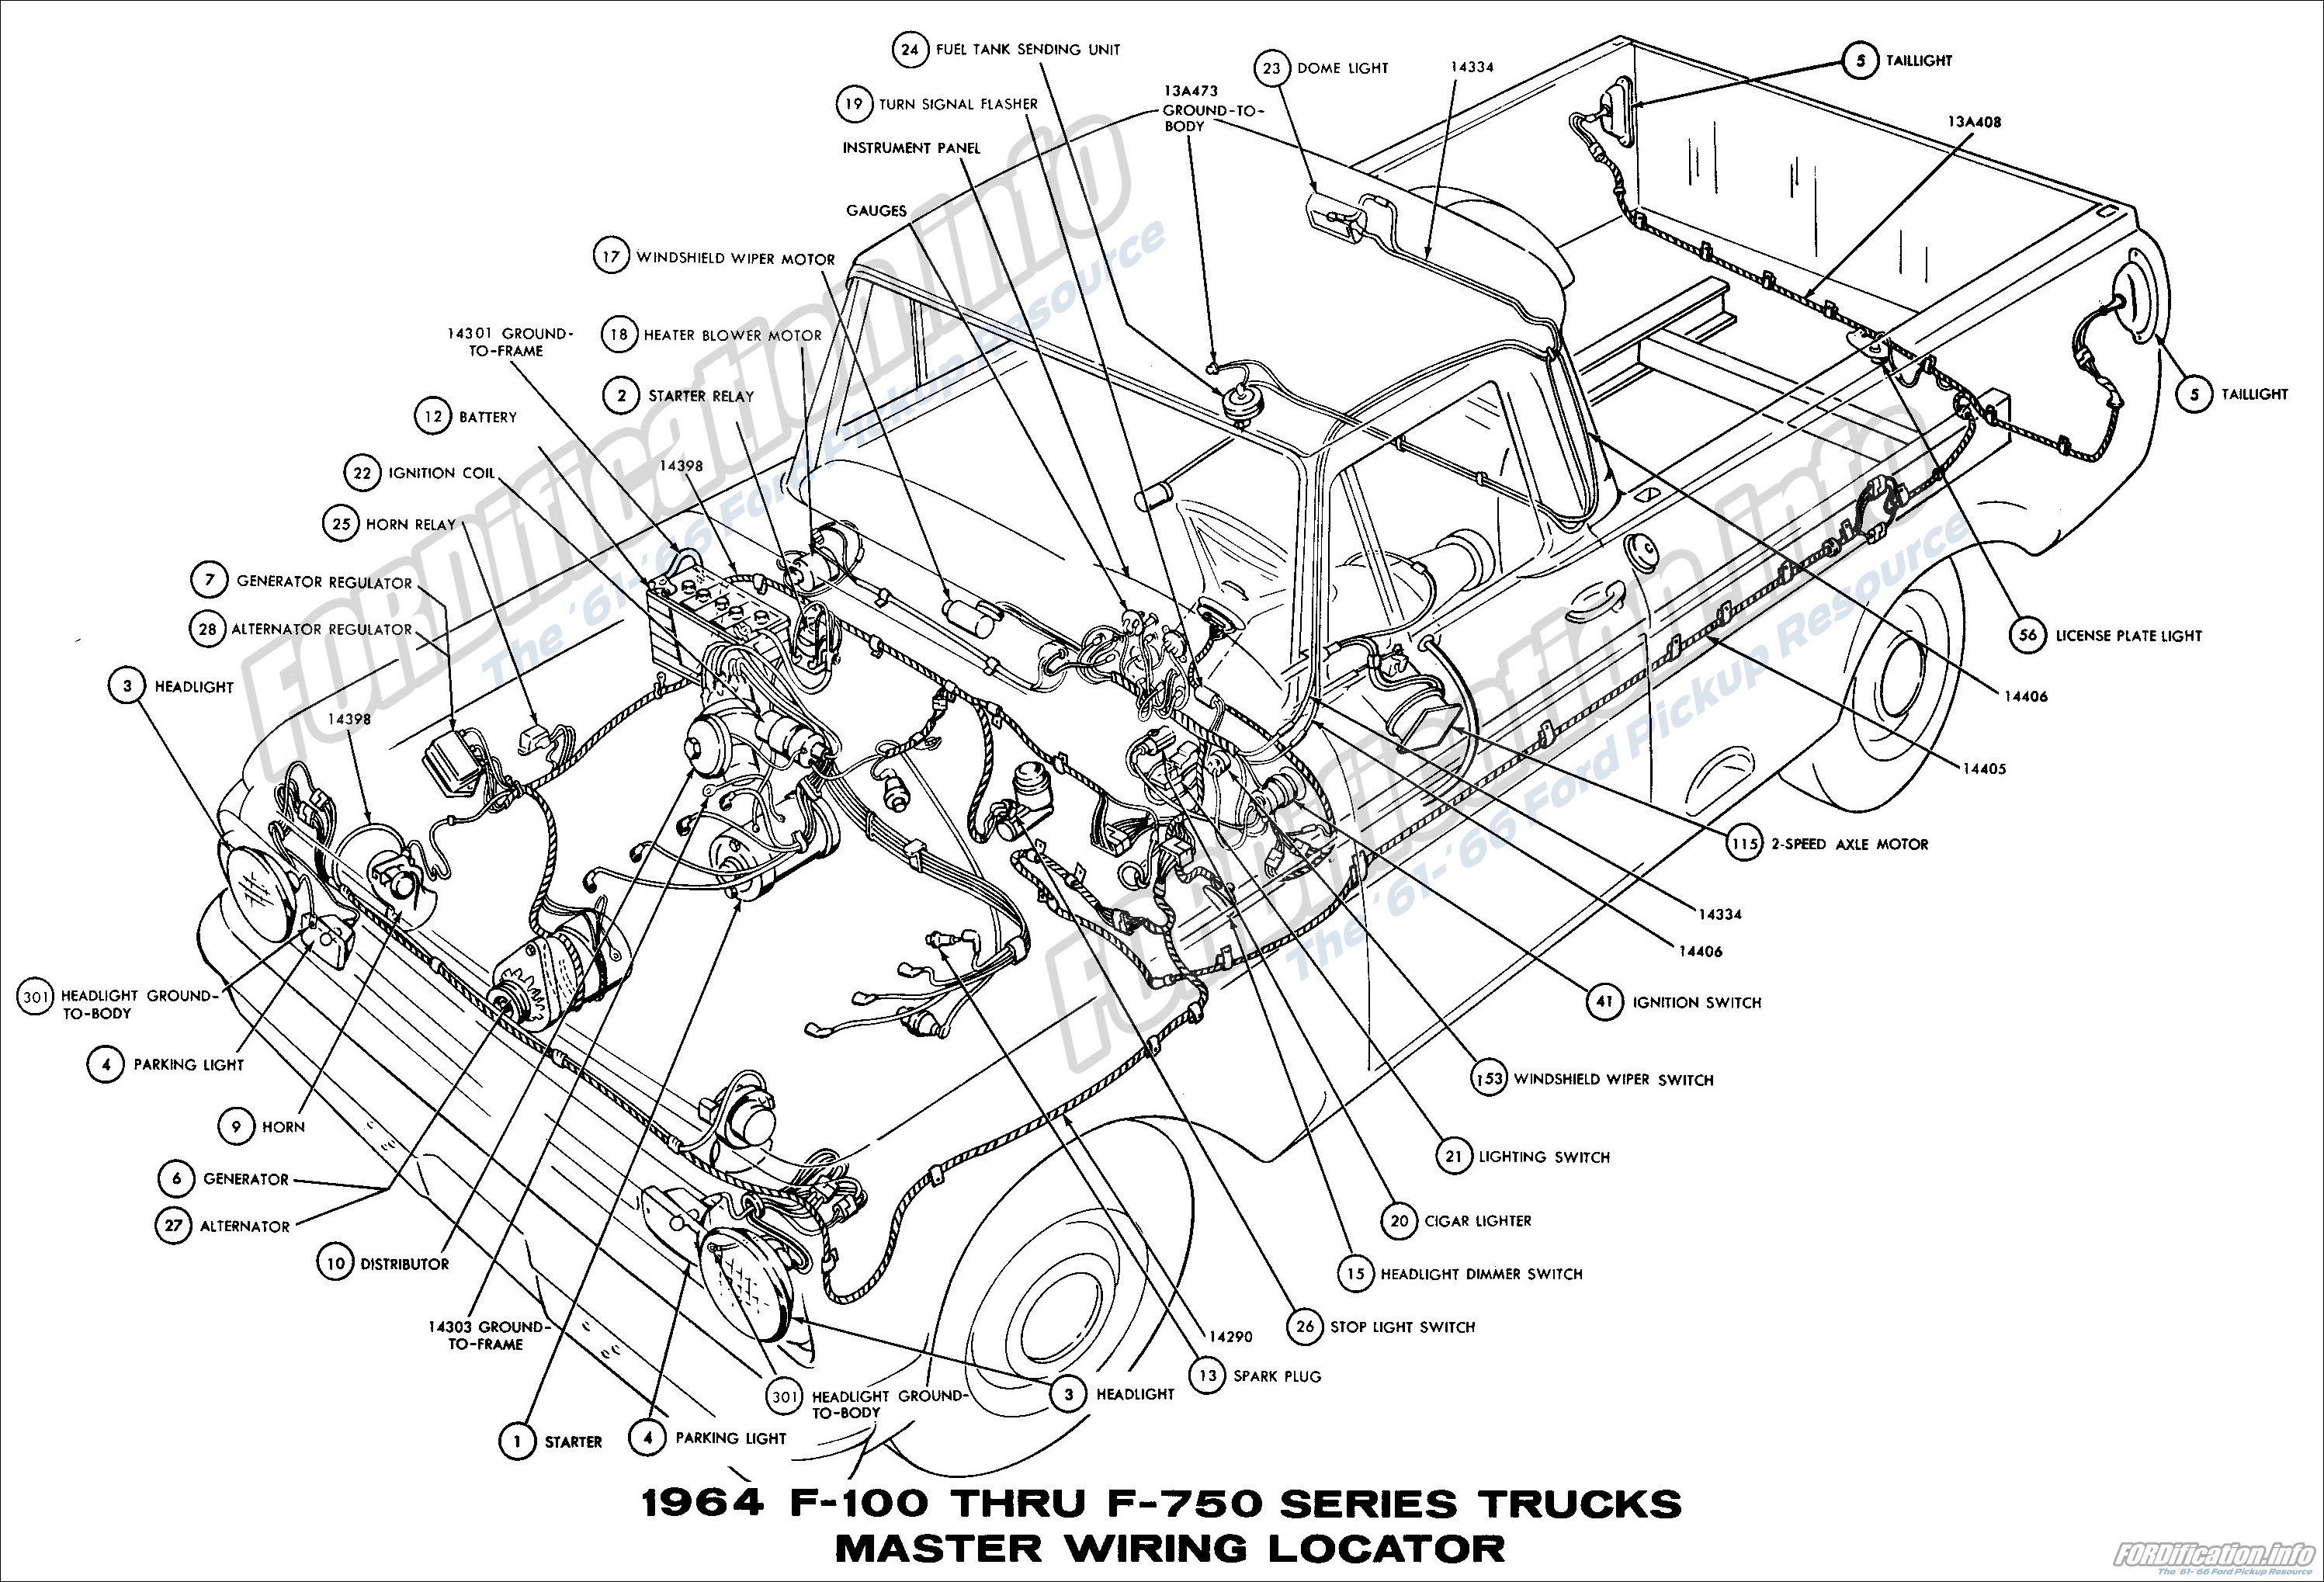 1964 ford truck wiring diagrams fordification info the 62 Ford Truck 69 Chevy Truck